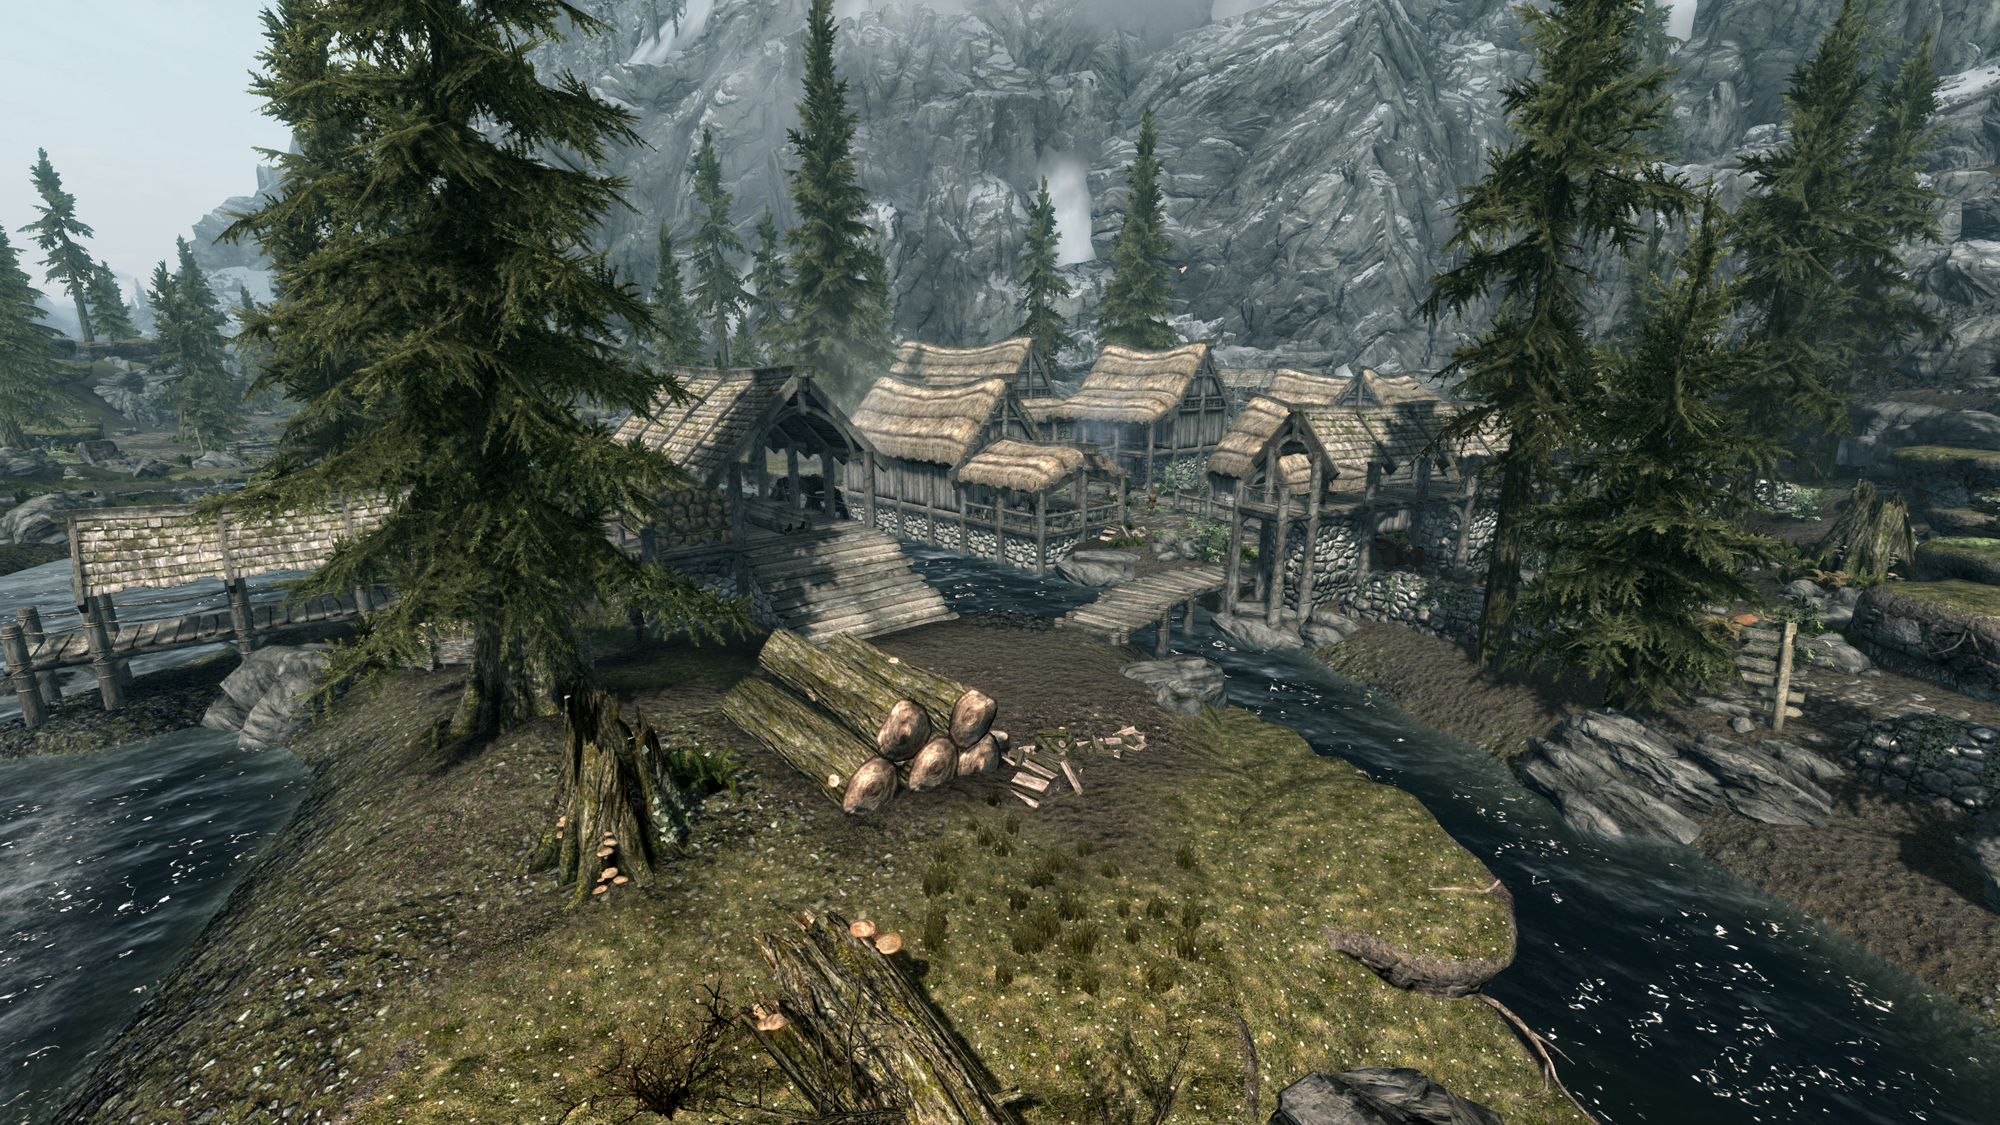 Riverwood (Skyrim) | Elder Scrolls | FANDOM powered by Wikia